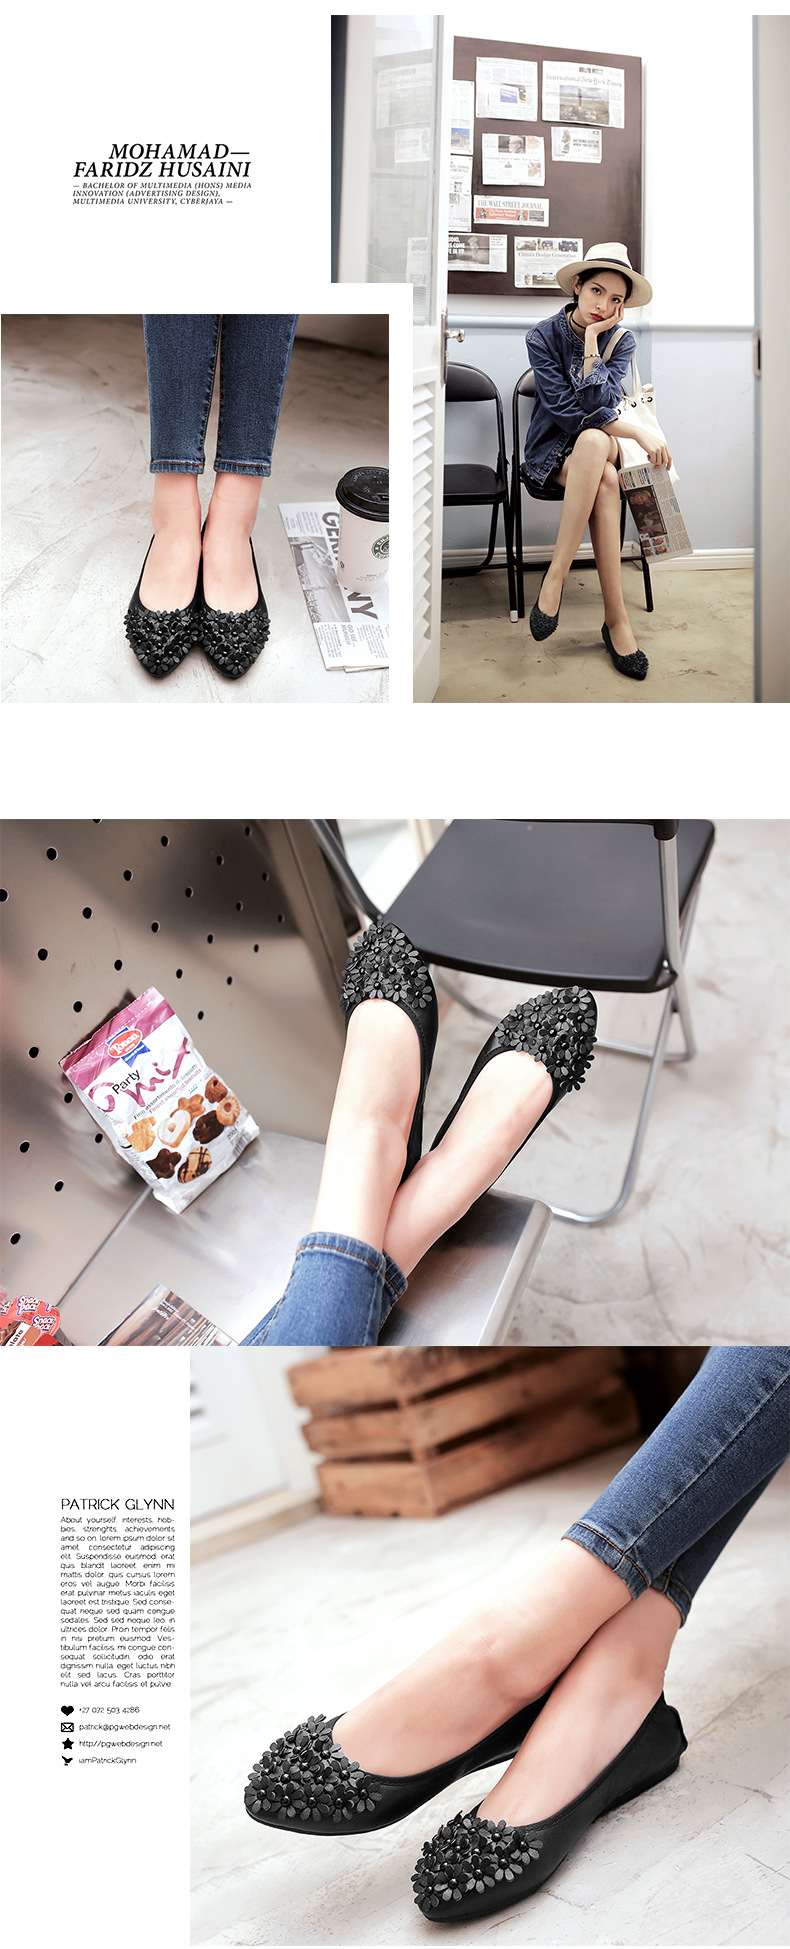 Women Foldable Ballet Shoes Flower Egg roll shoe Woman PU Pointed Toe Girl Shollow Single Shoes Ballet Flats Girl Ladies 34-45 (14)